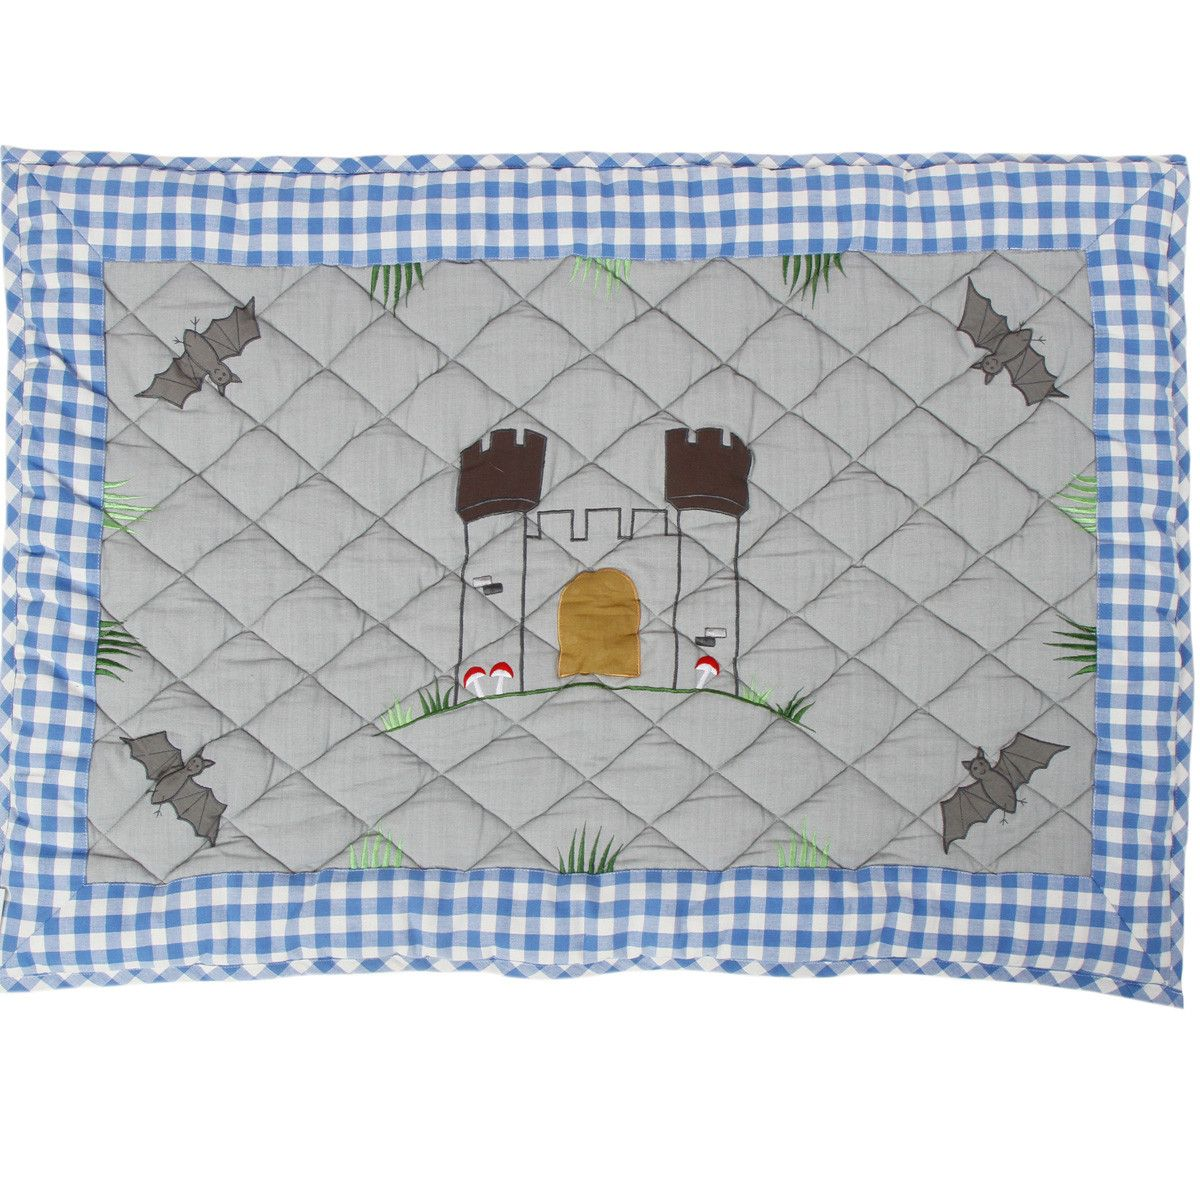 Knight's Castle Playhouse Floor Quilt (Win Green -klein)